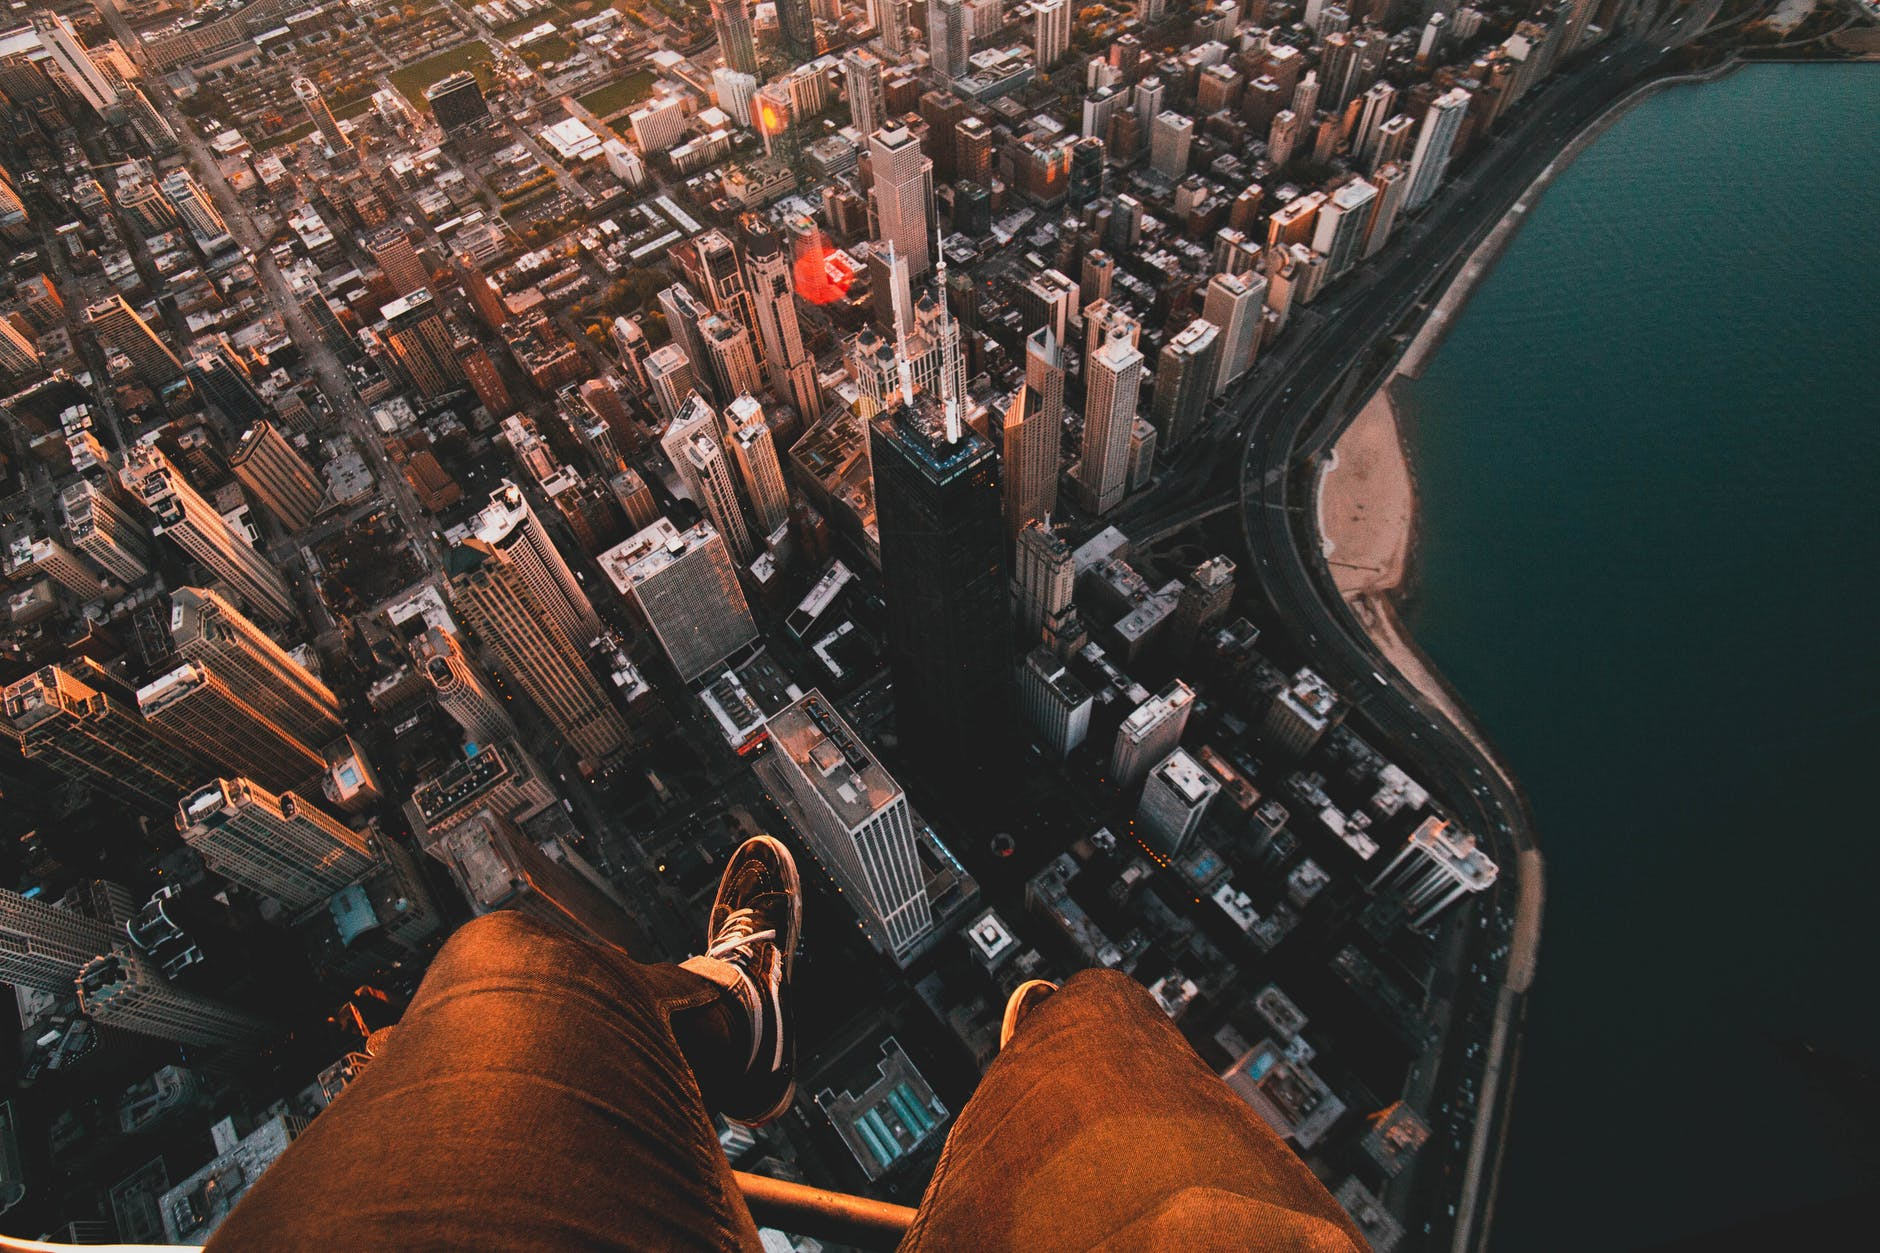 hovering over a city looking down past your feet.